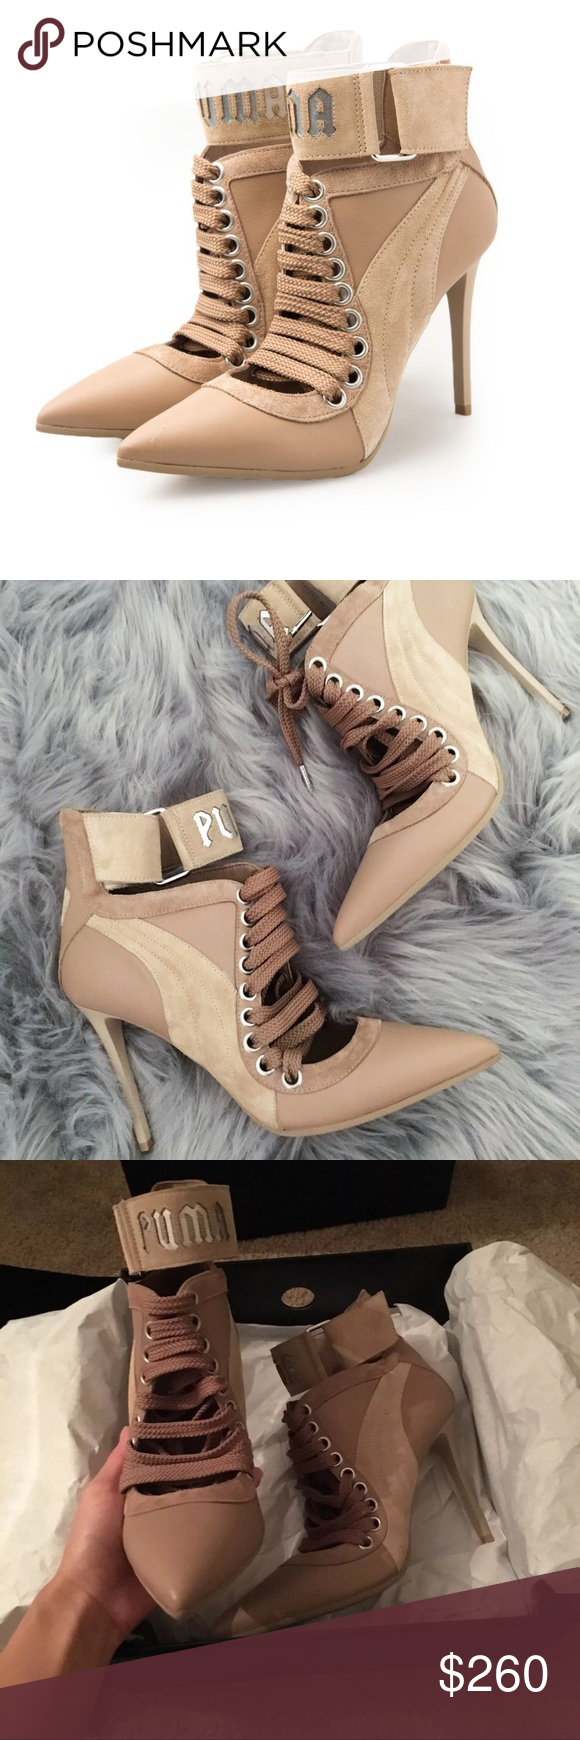 e90446559e5c FENTY PUMA RIHANNA sneaker heel nude lace up Brought from Nordstrom s